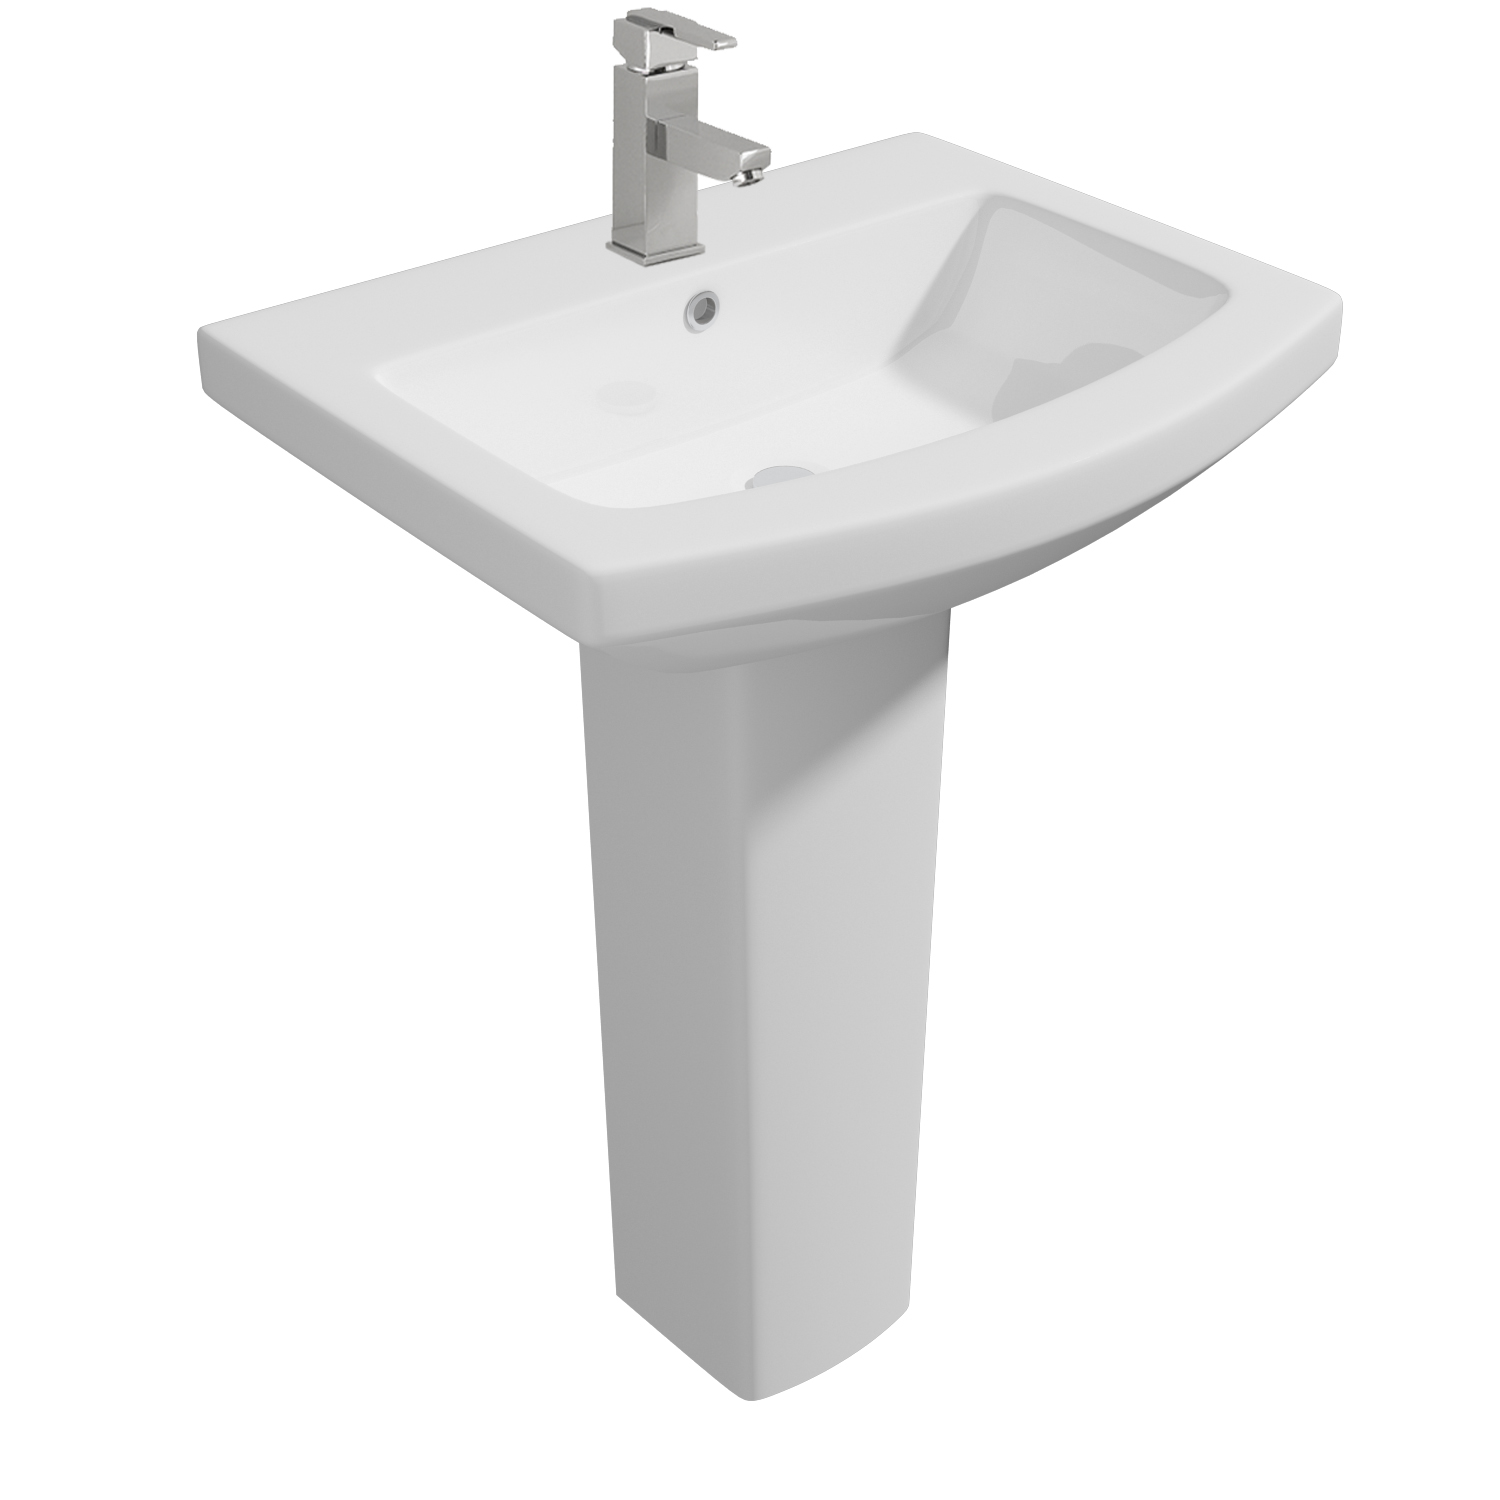 K-Vit Trim 550mm 1TH Basin & Pedestal